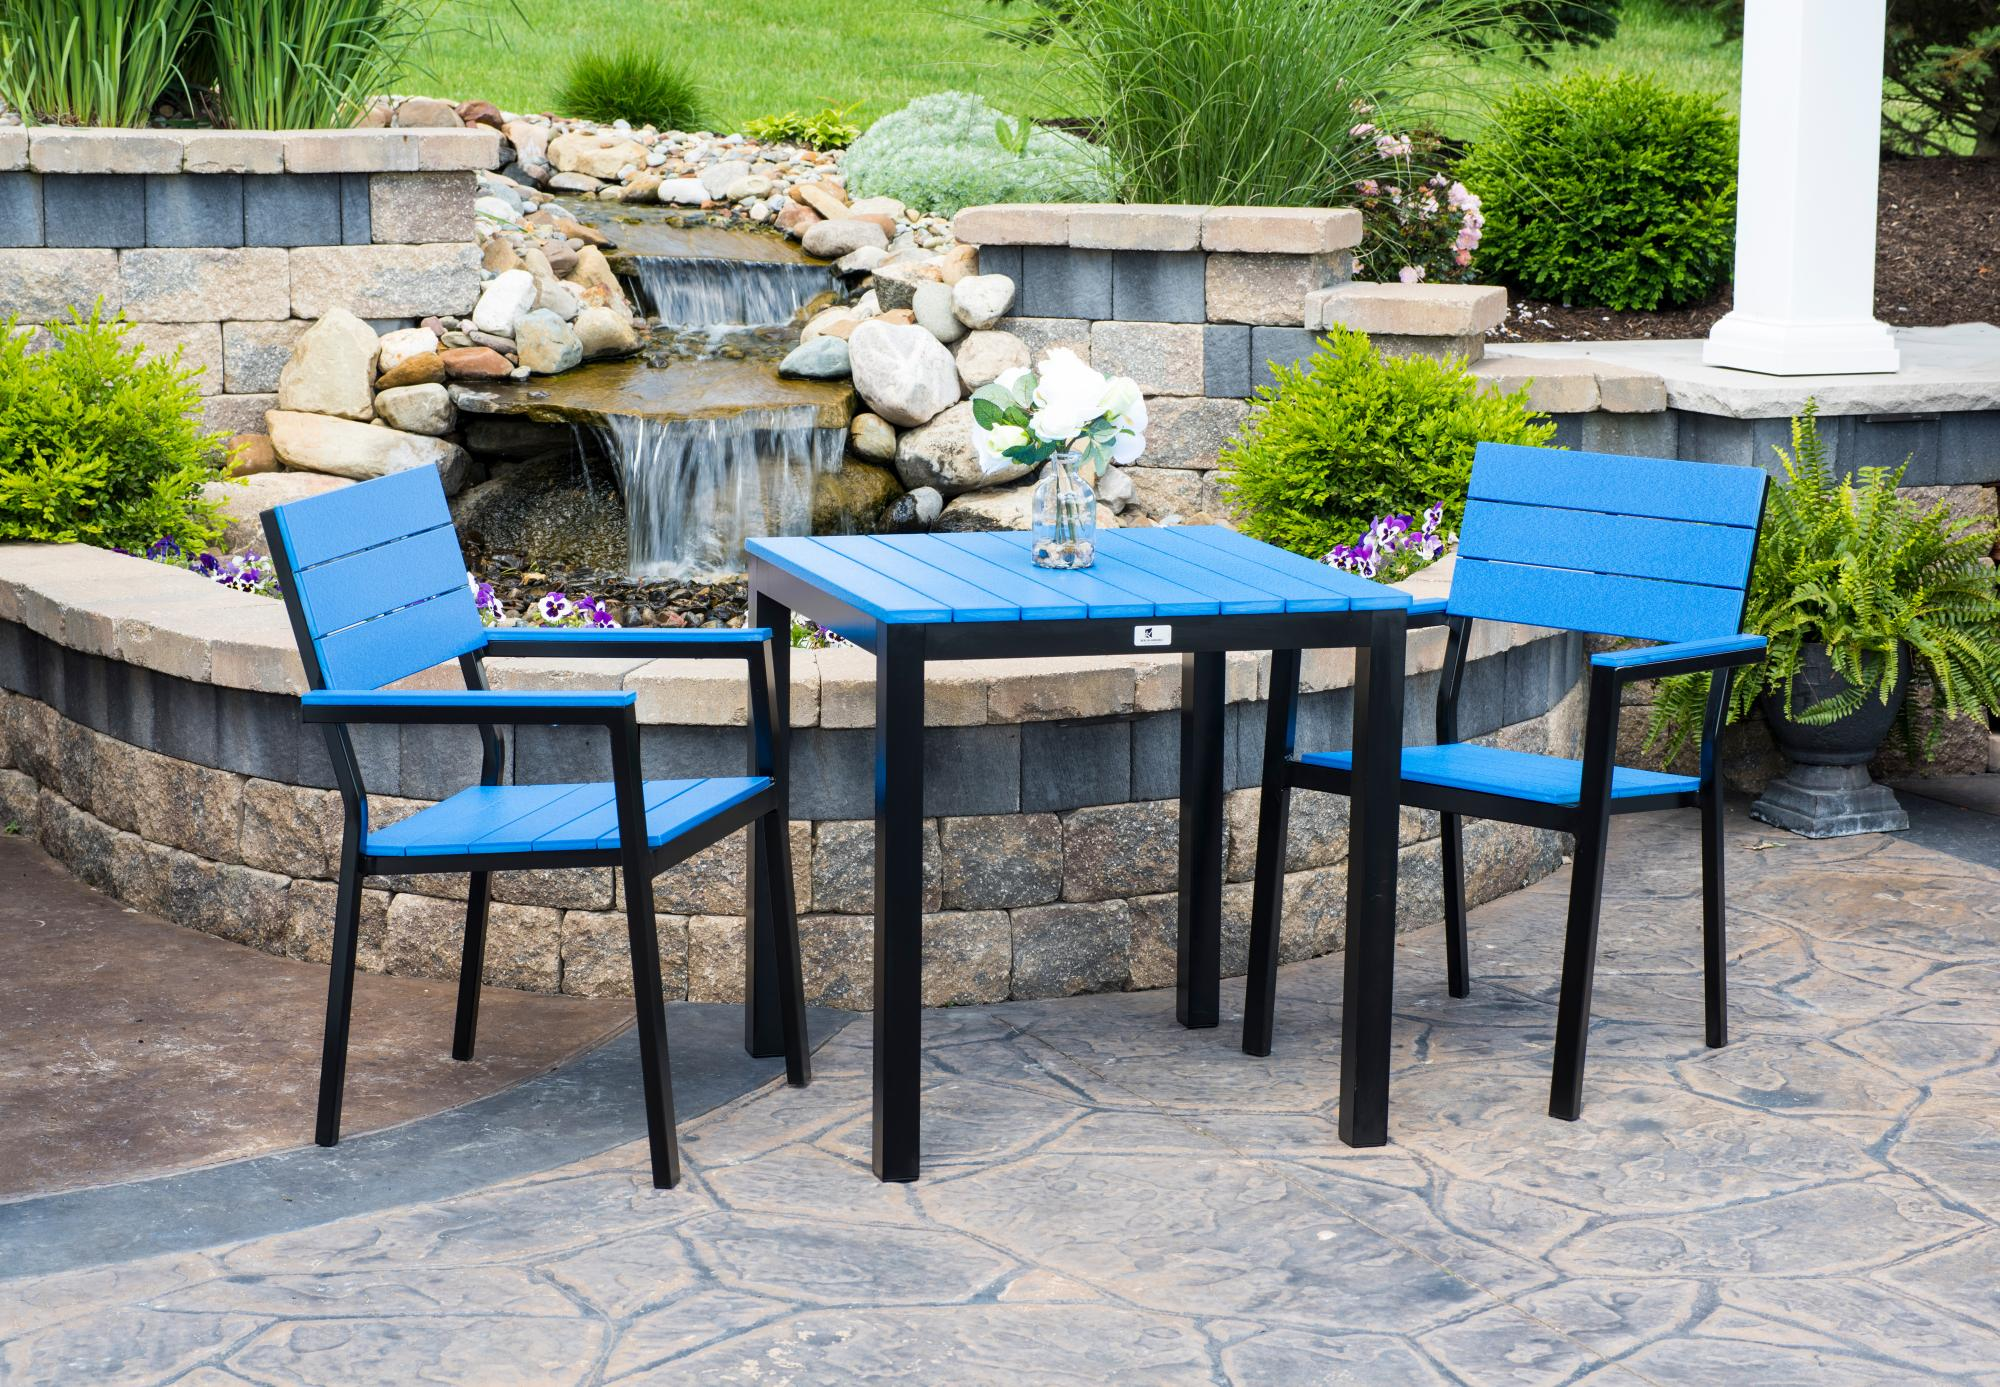 PAX Outdoor Furniture Belvidere TN